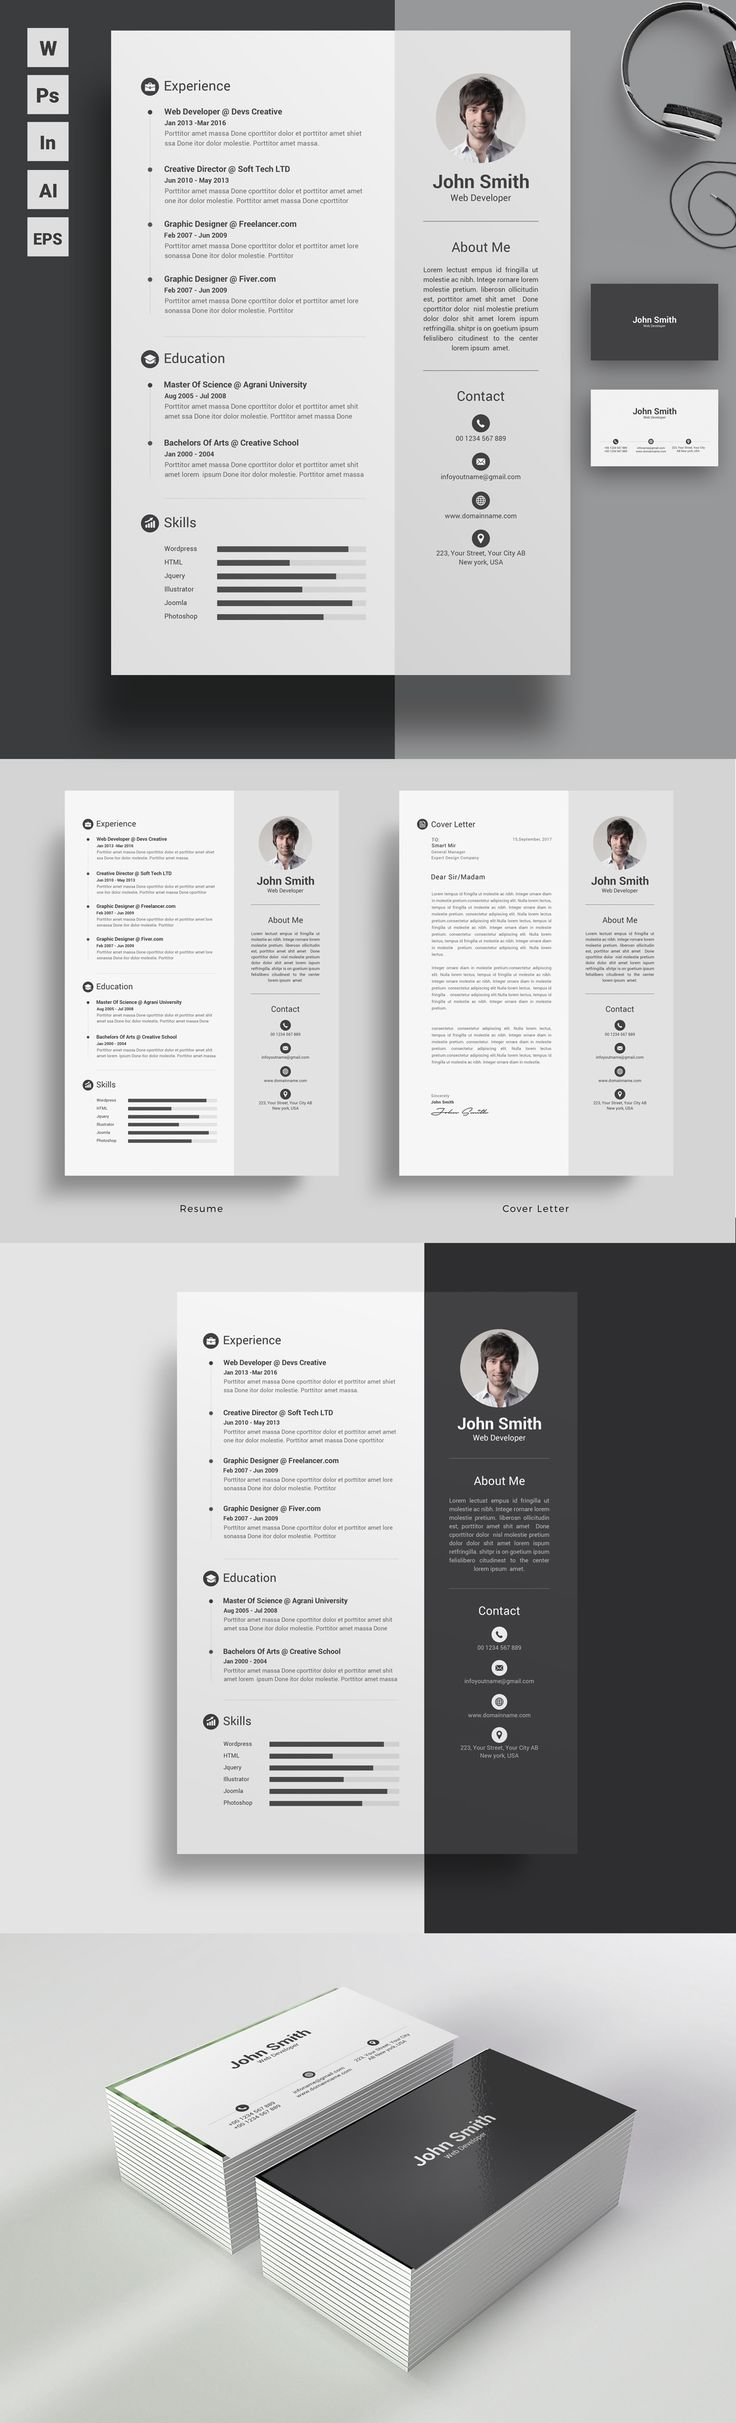 Clean but lucrative trendy resume design template for those who wants to stand out in the crowd. Definitely an eye catcher.  Word Resume+ Word Coverletter + Word Business Card Template